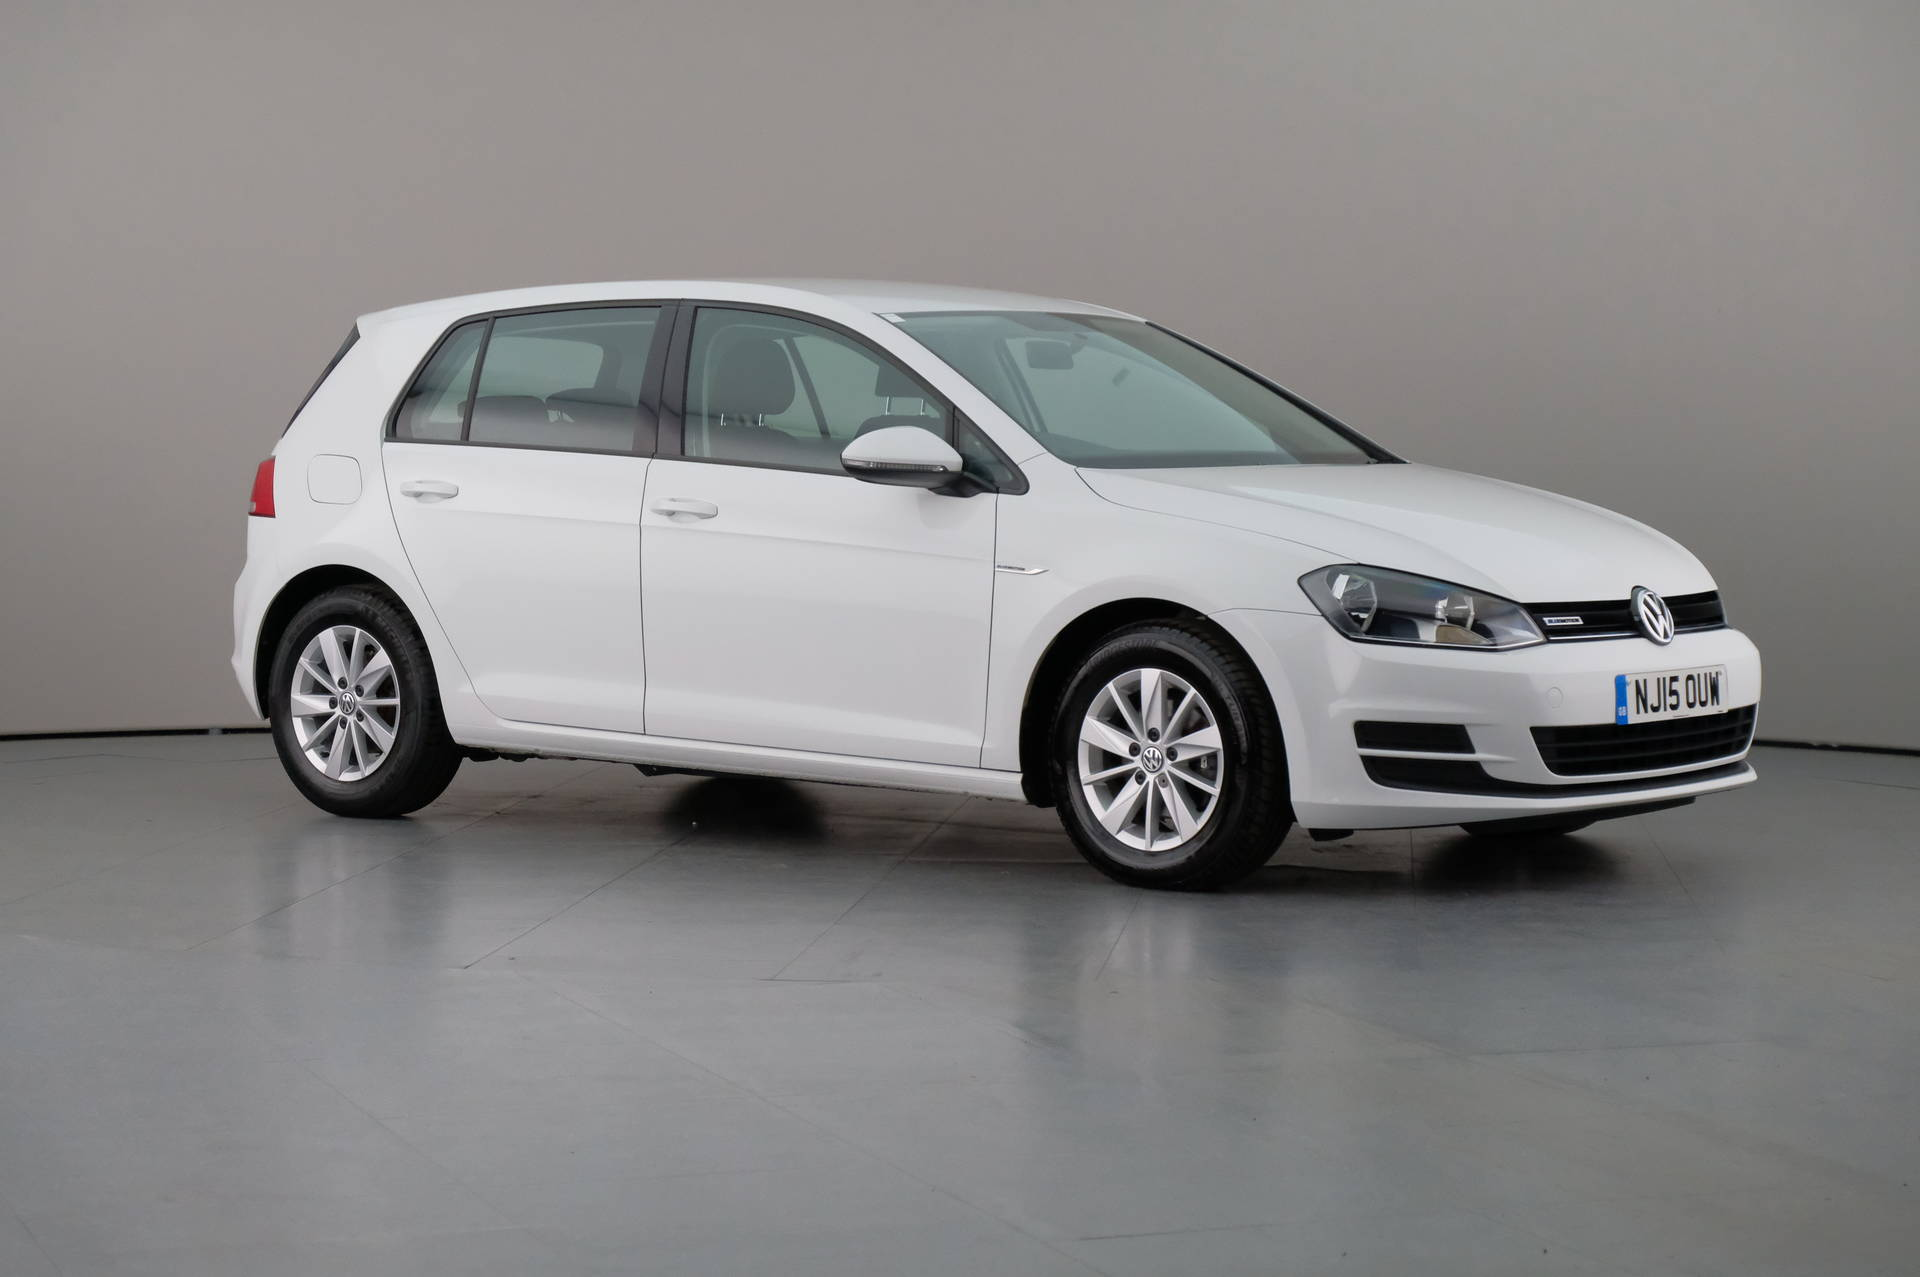 Volkswagen Golf 1.6TDi BLUEMOTION 5DR, 360-image35